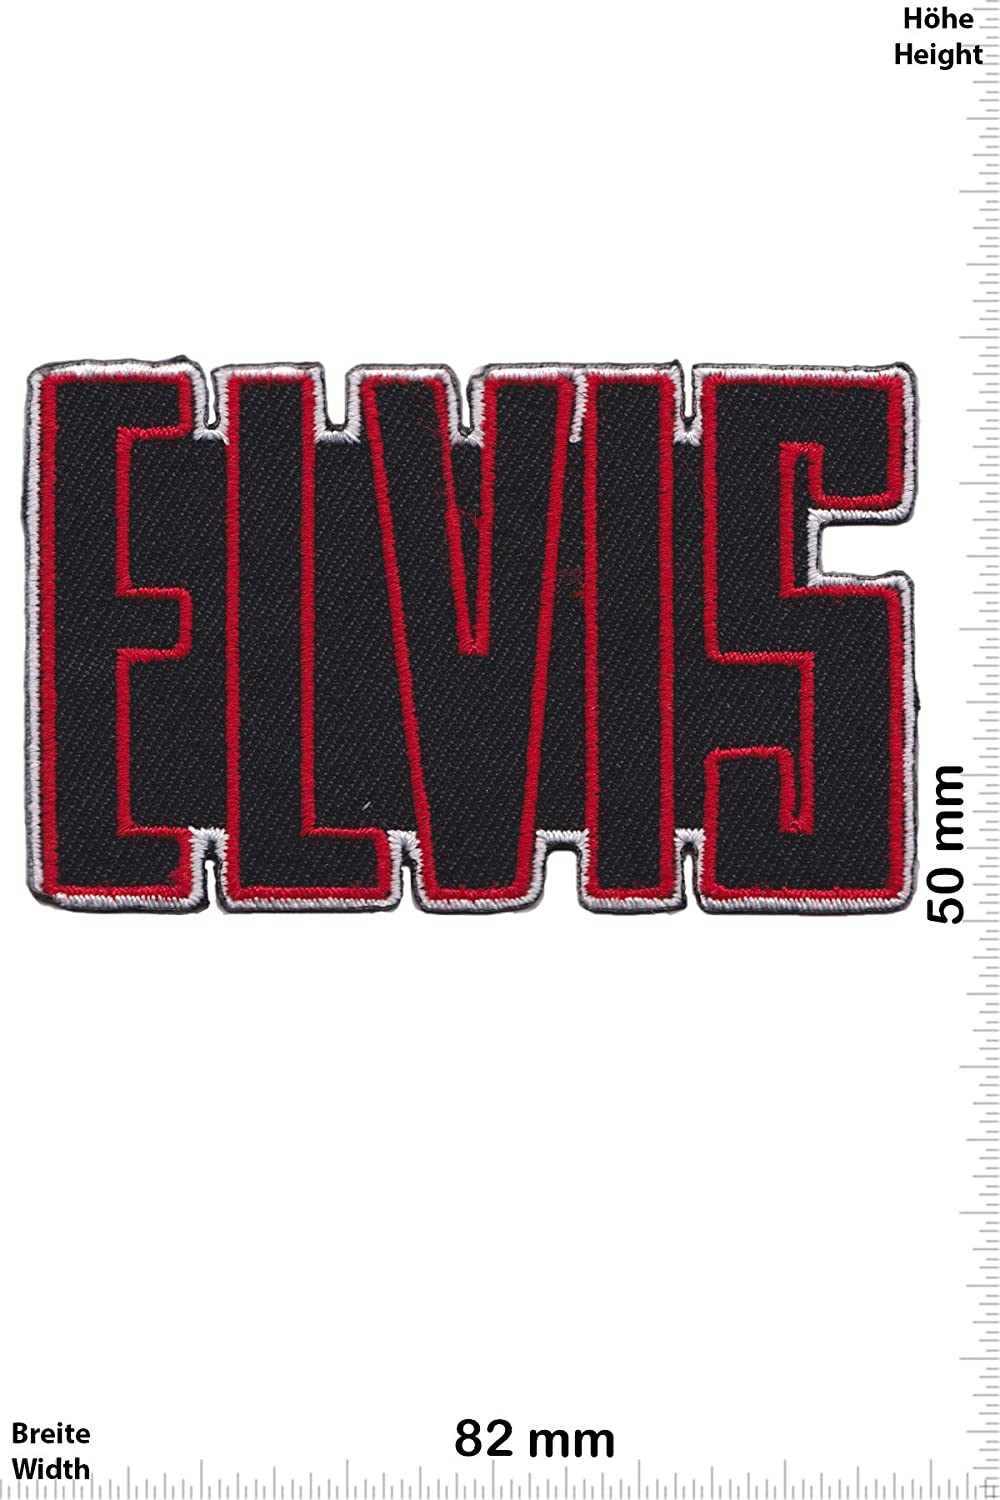 zum aufb/ügeln Elvis Patch Font Musik Iron On Aufn/äher Elvis